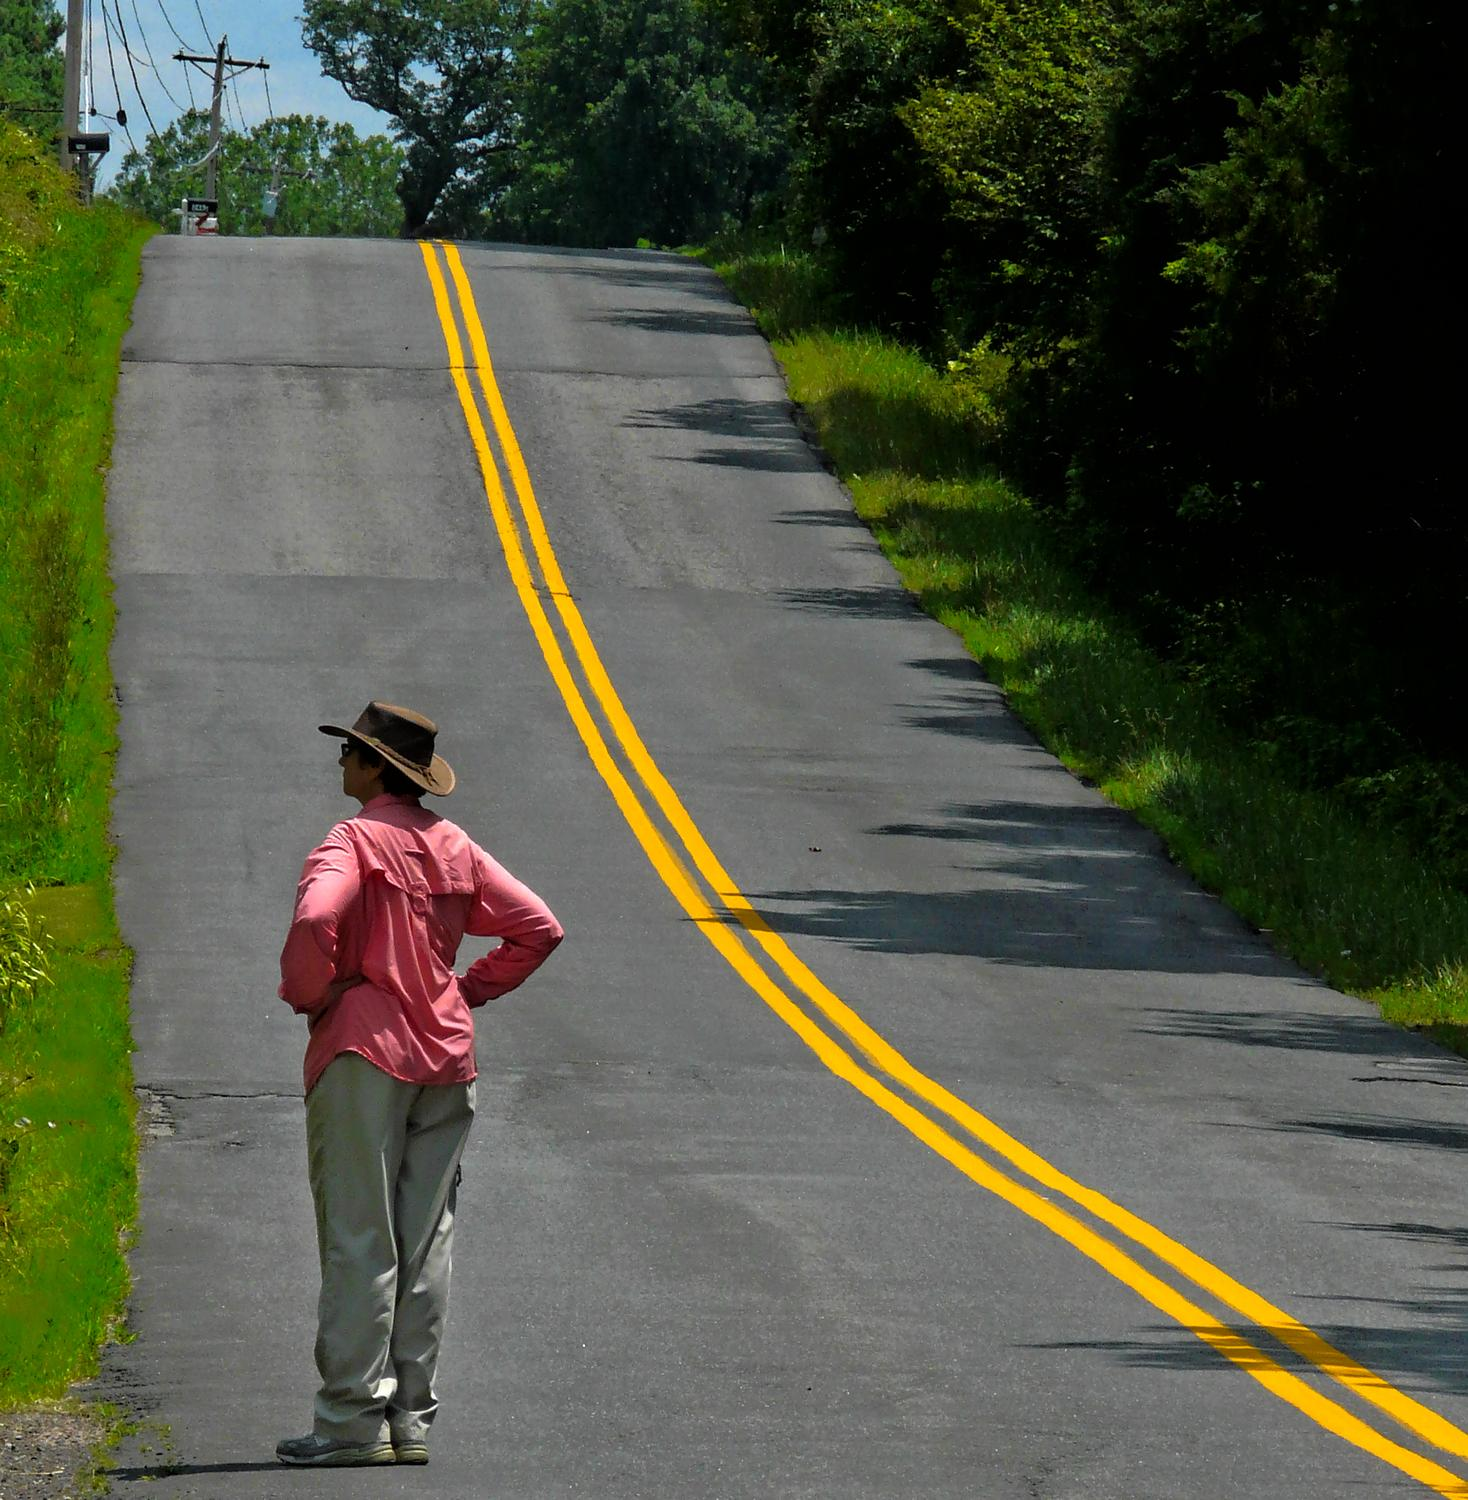 the artist's muse by a hilly road with a yellow stripe - The artist's muse contemplates the next hill on the way home. - Panasonic DMC-FZ18 - Tony Karp, design, art, photography, techno-impressionist, techno-impressionism, aerial photography , drone , drones , dji , mavic pro , video , 3D printing - Books -